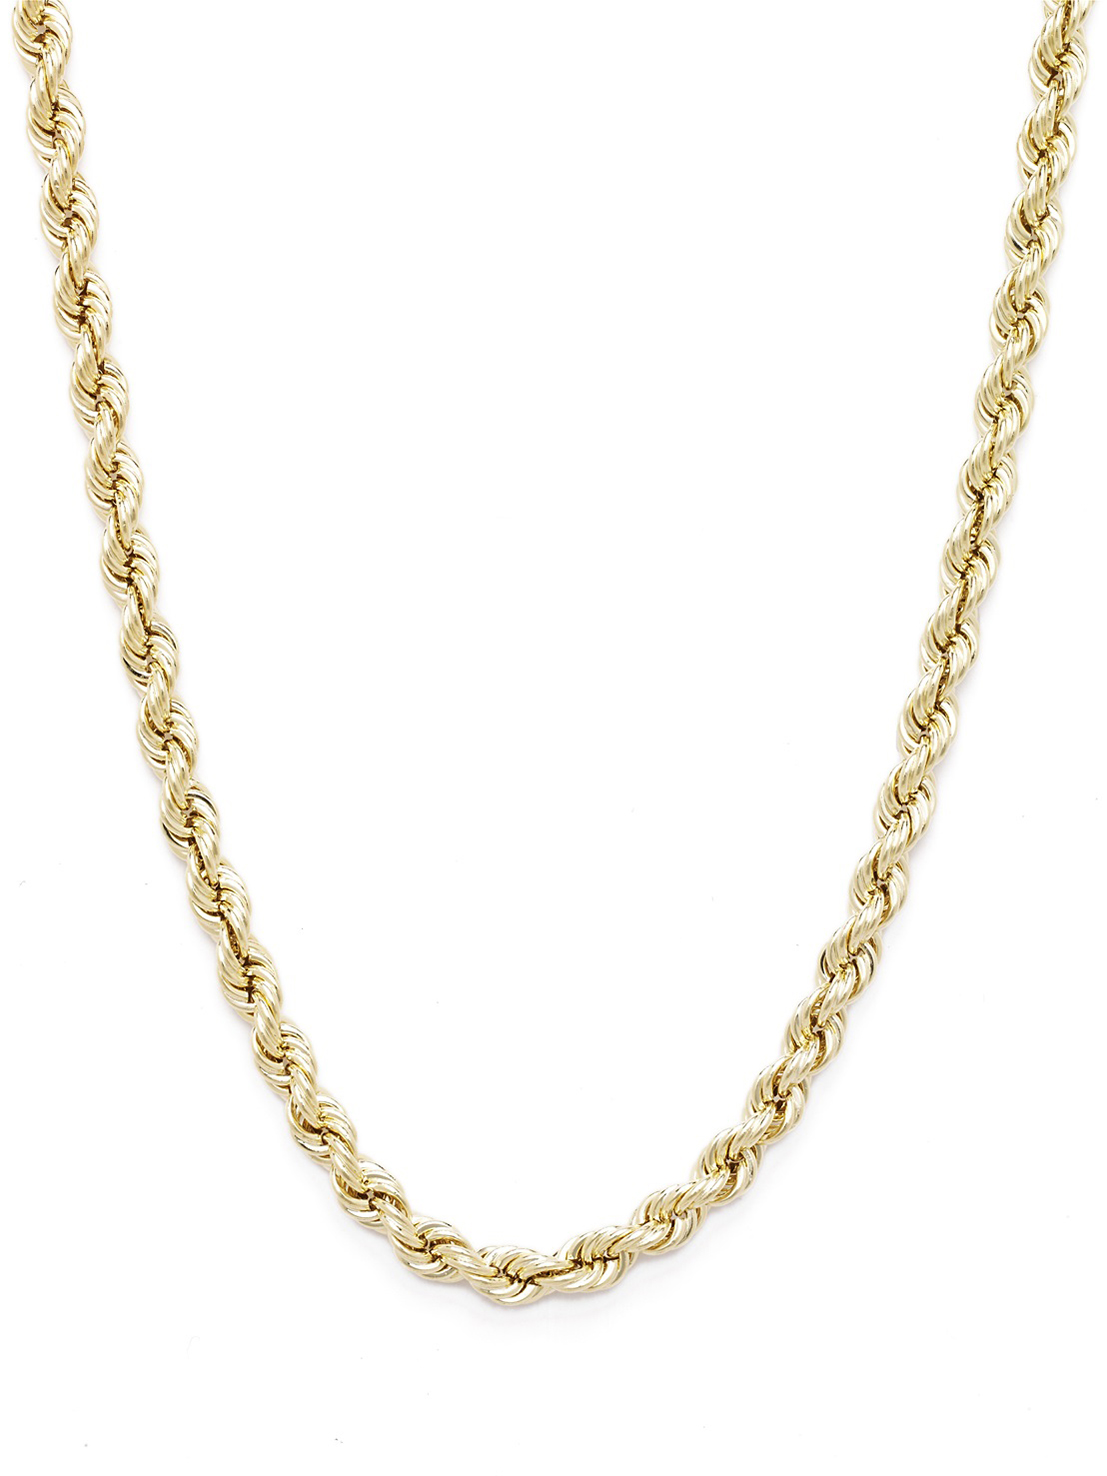 10k Yellow Gold Hollow Rope Chain Necklace with Lobster Claw Clasp for Women and Men, 2mm